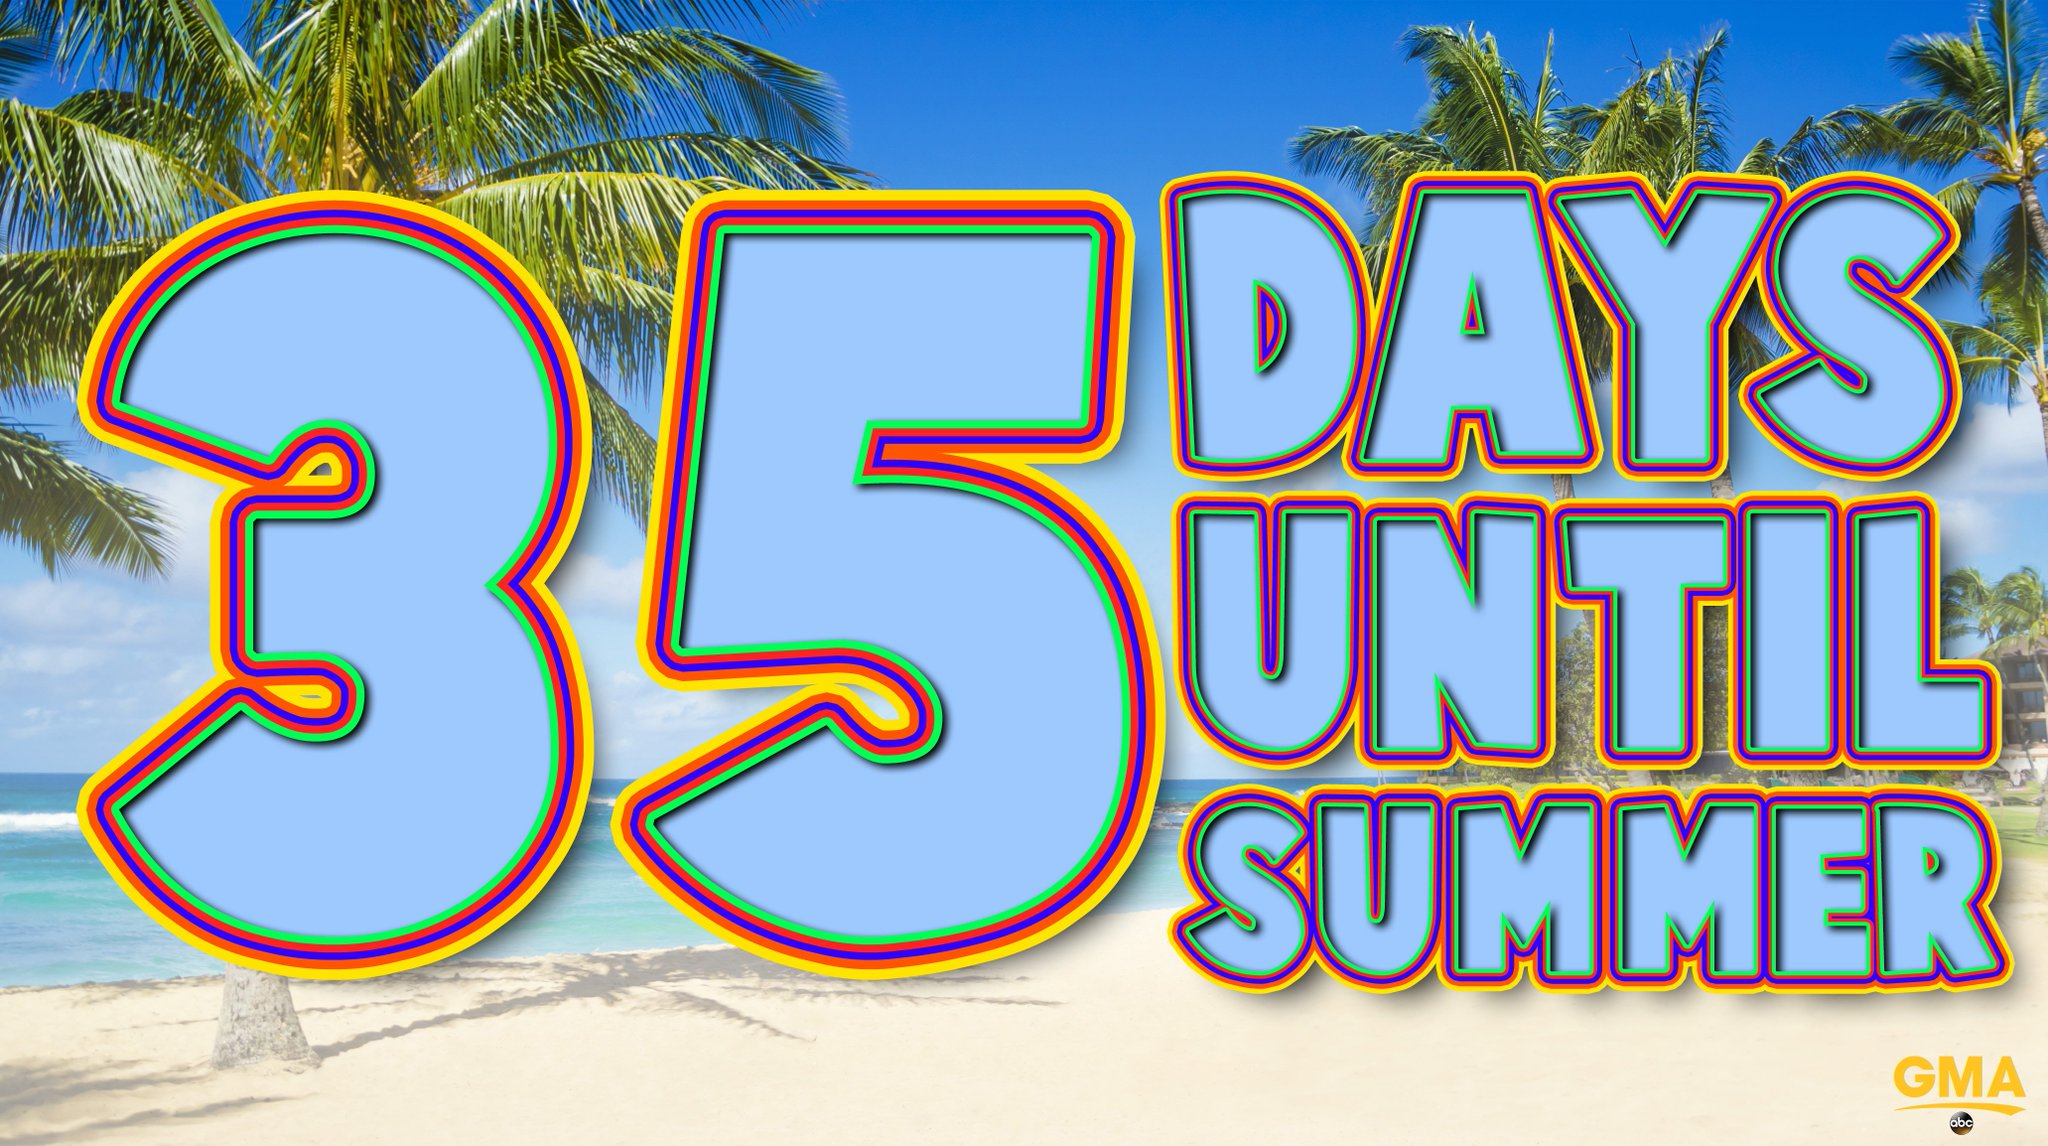 35 days until SUMMER! �� ☀️ https://t.co/ApVRgqVCb1